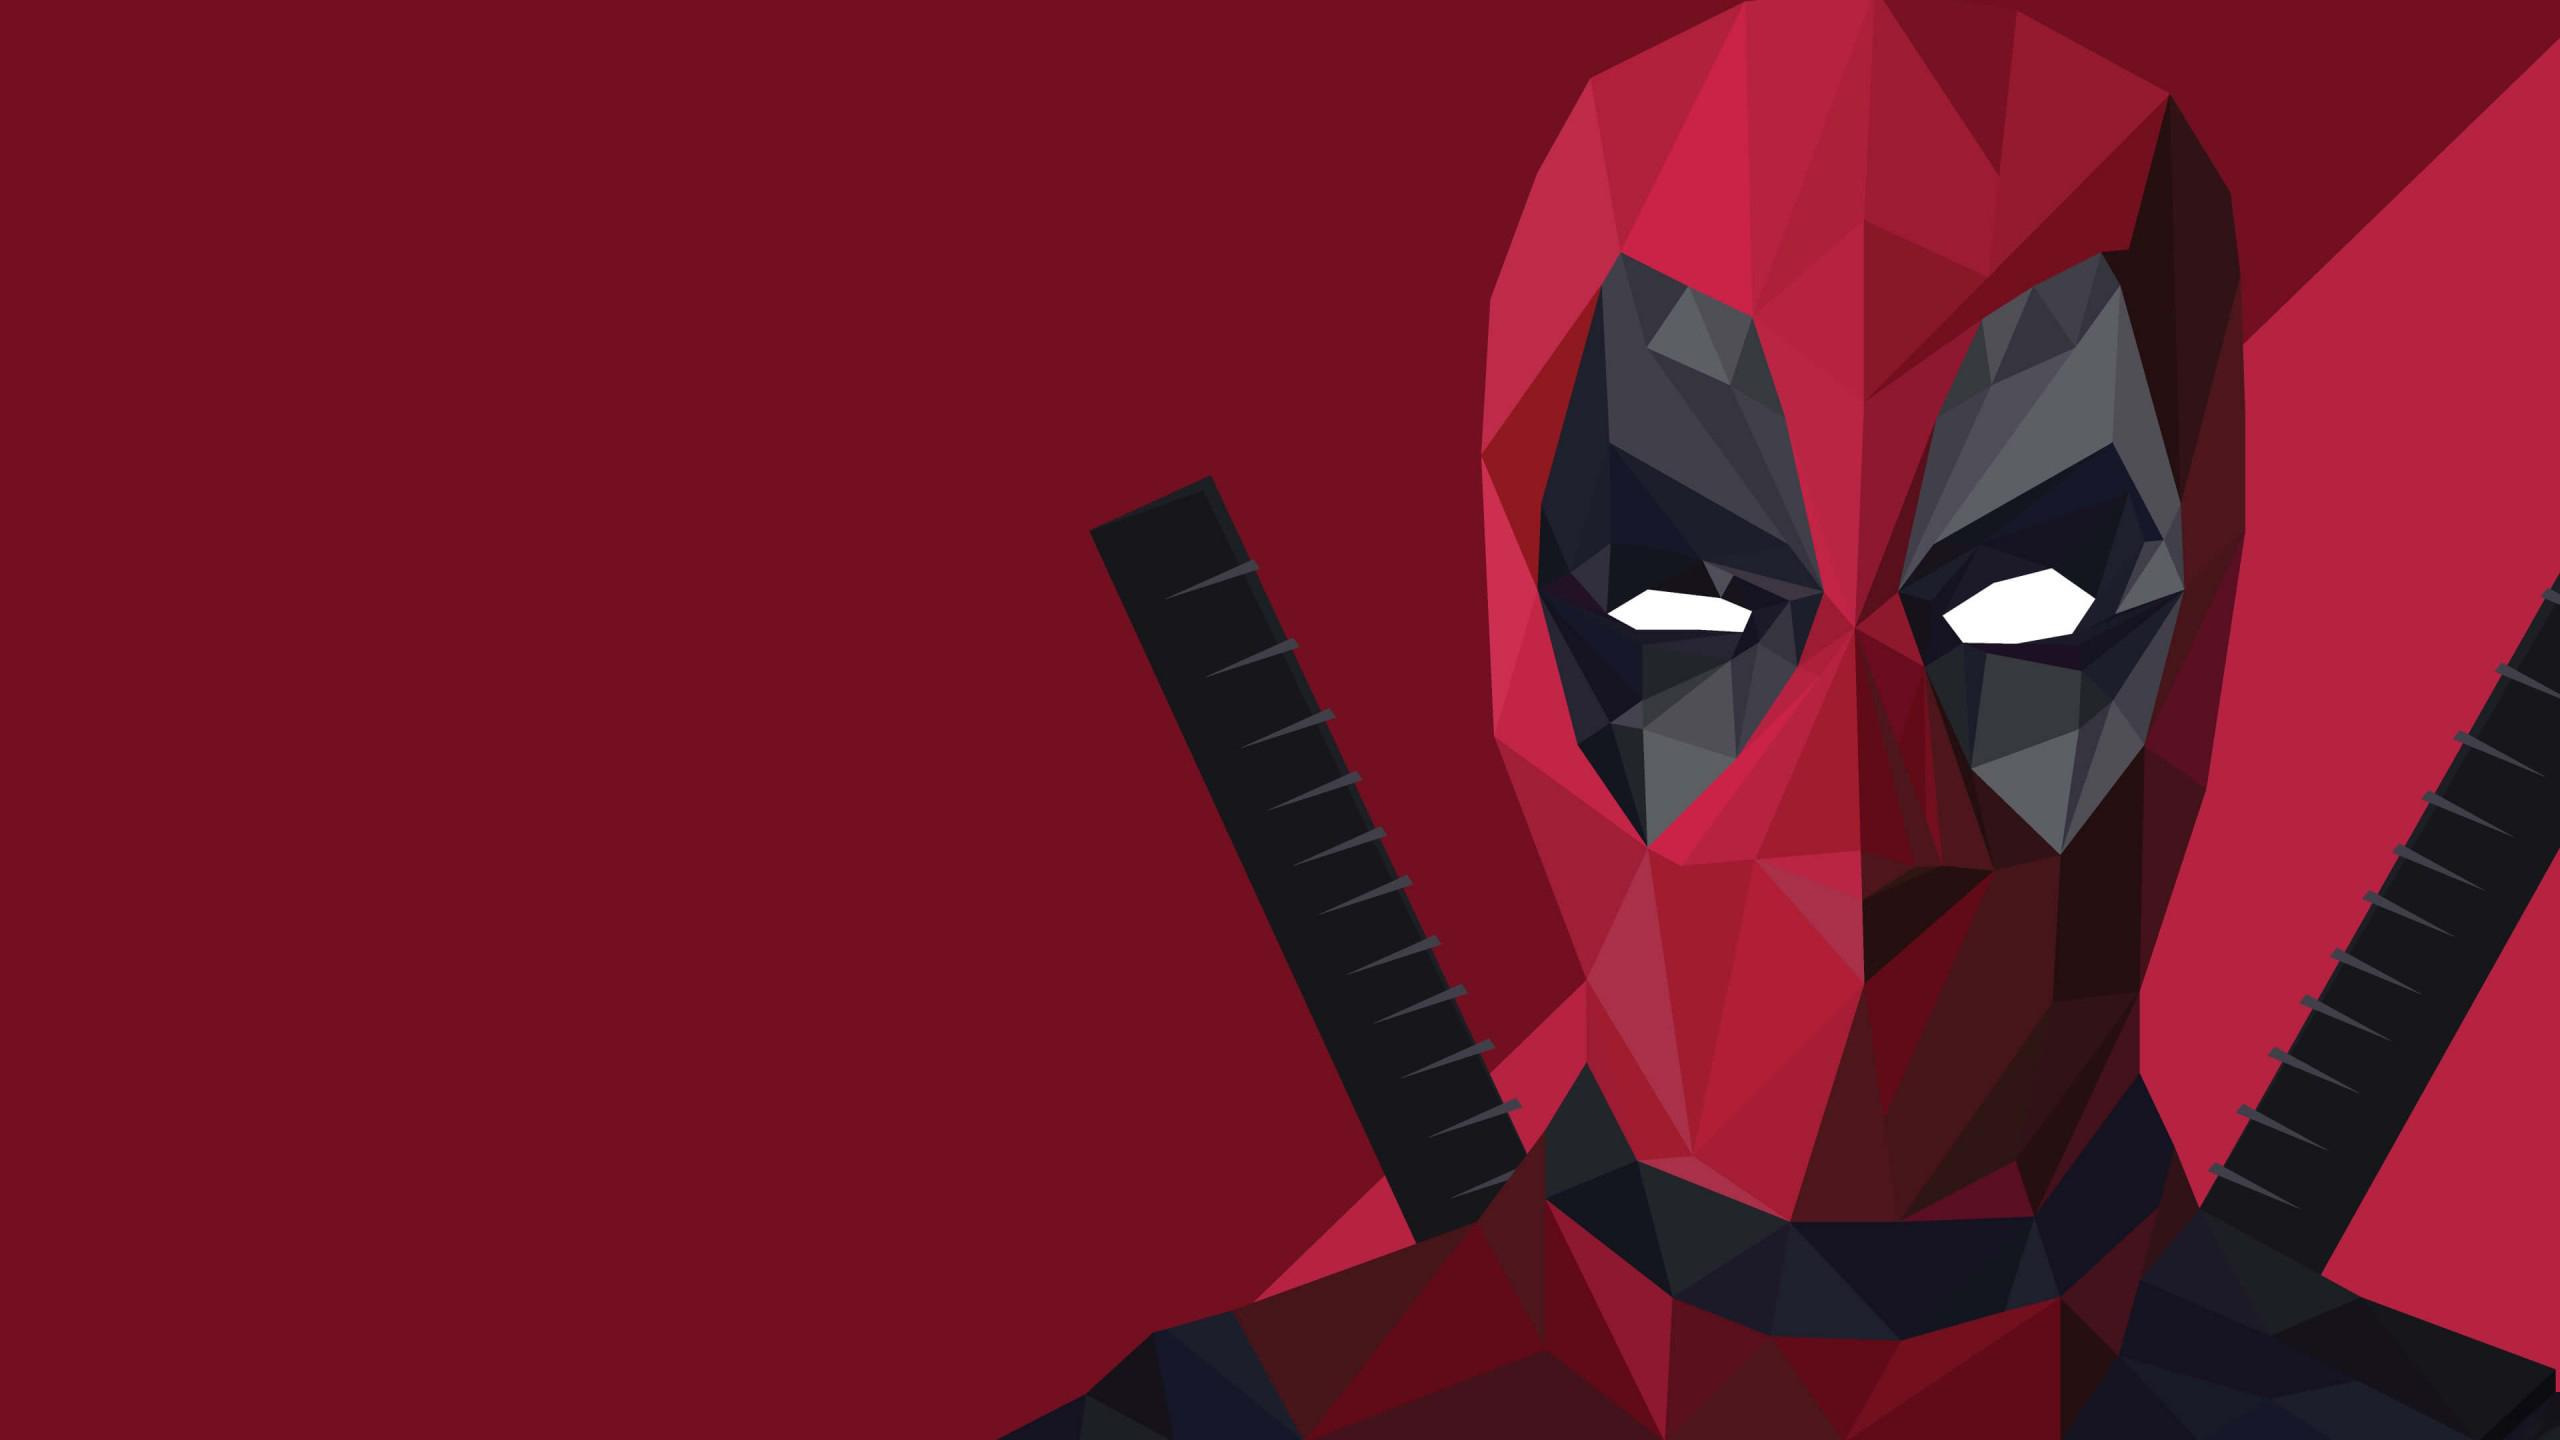 Deadpool 4k Wallpapers For Your Desktop Or Mobile Screen Free And Easy To Download